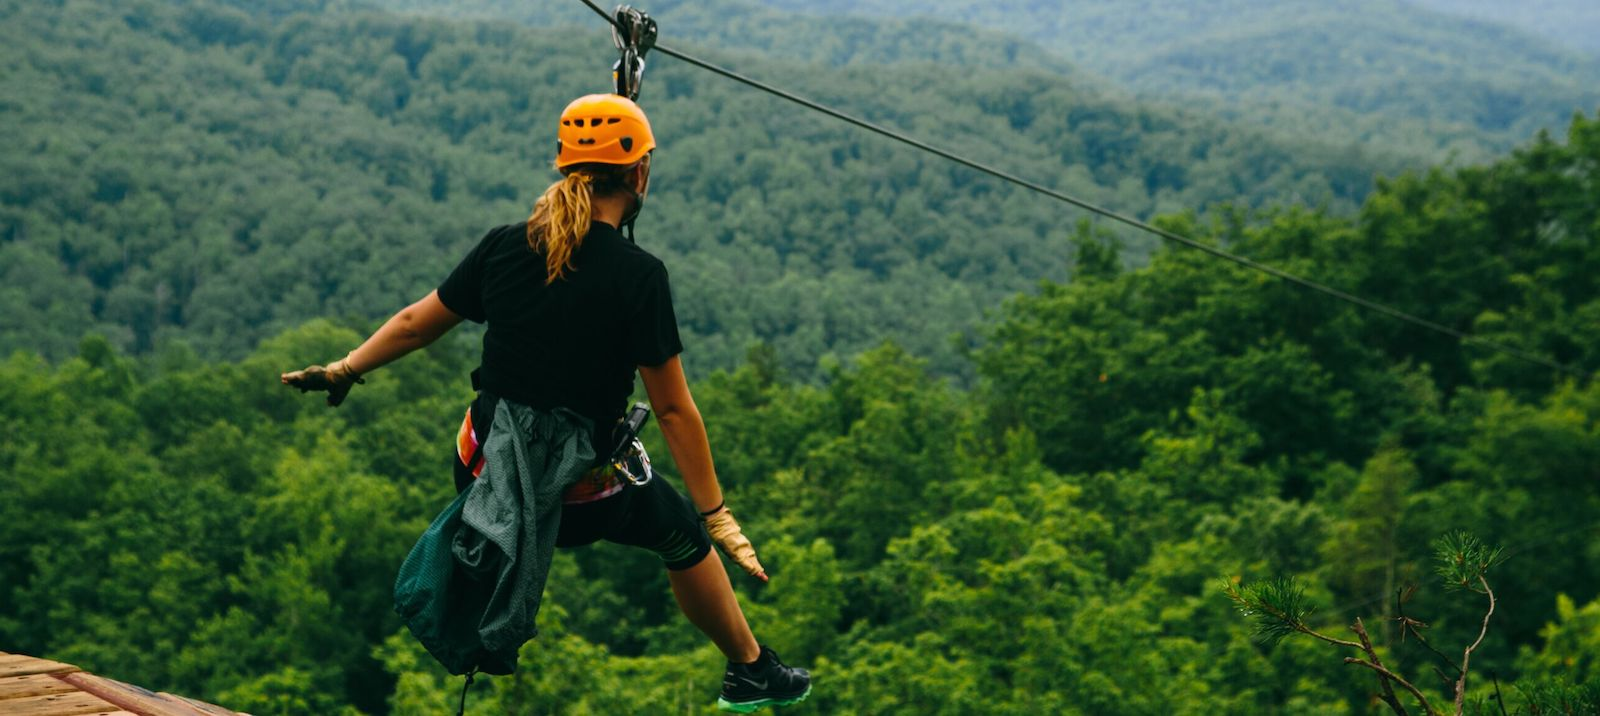 5 Reasons Our Ziplines in the Smoky Mountains Are Perfect for a Girls' Day Out